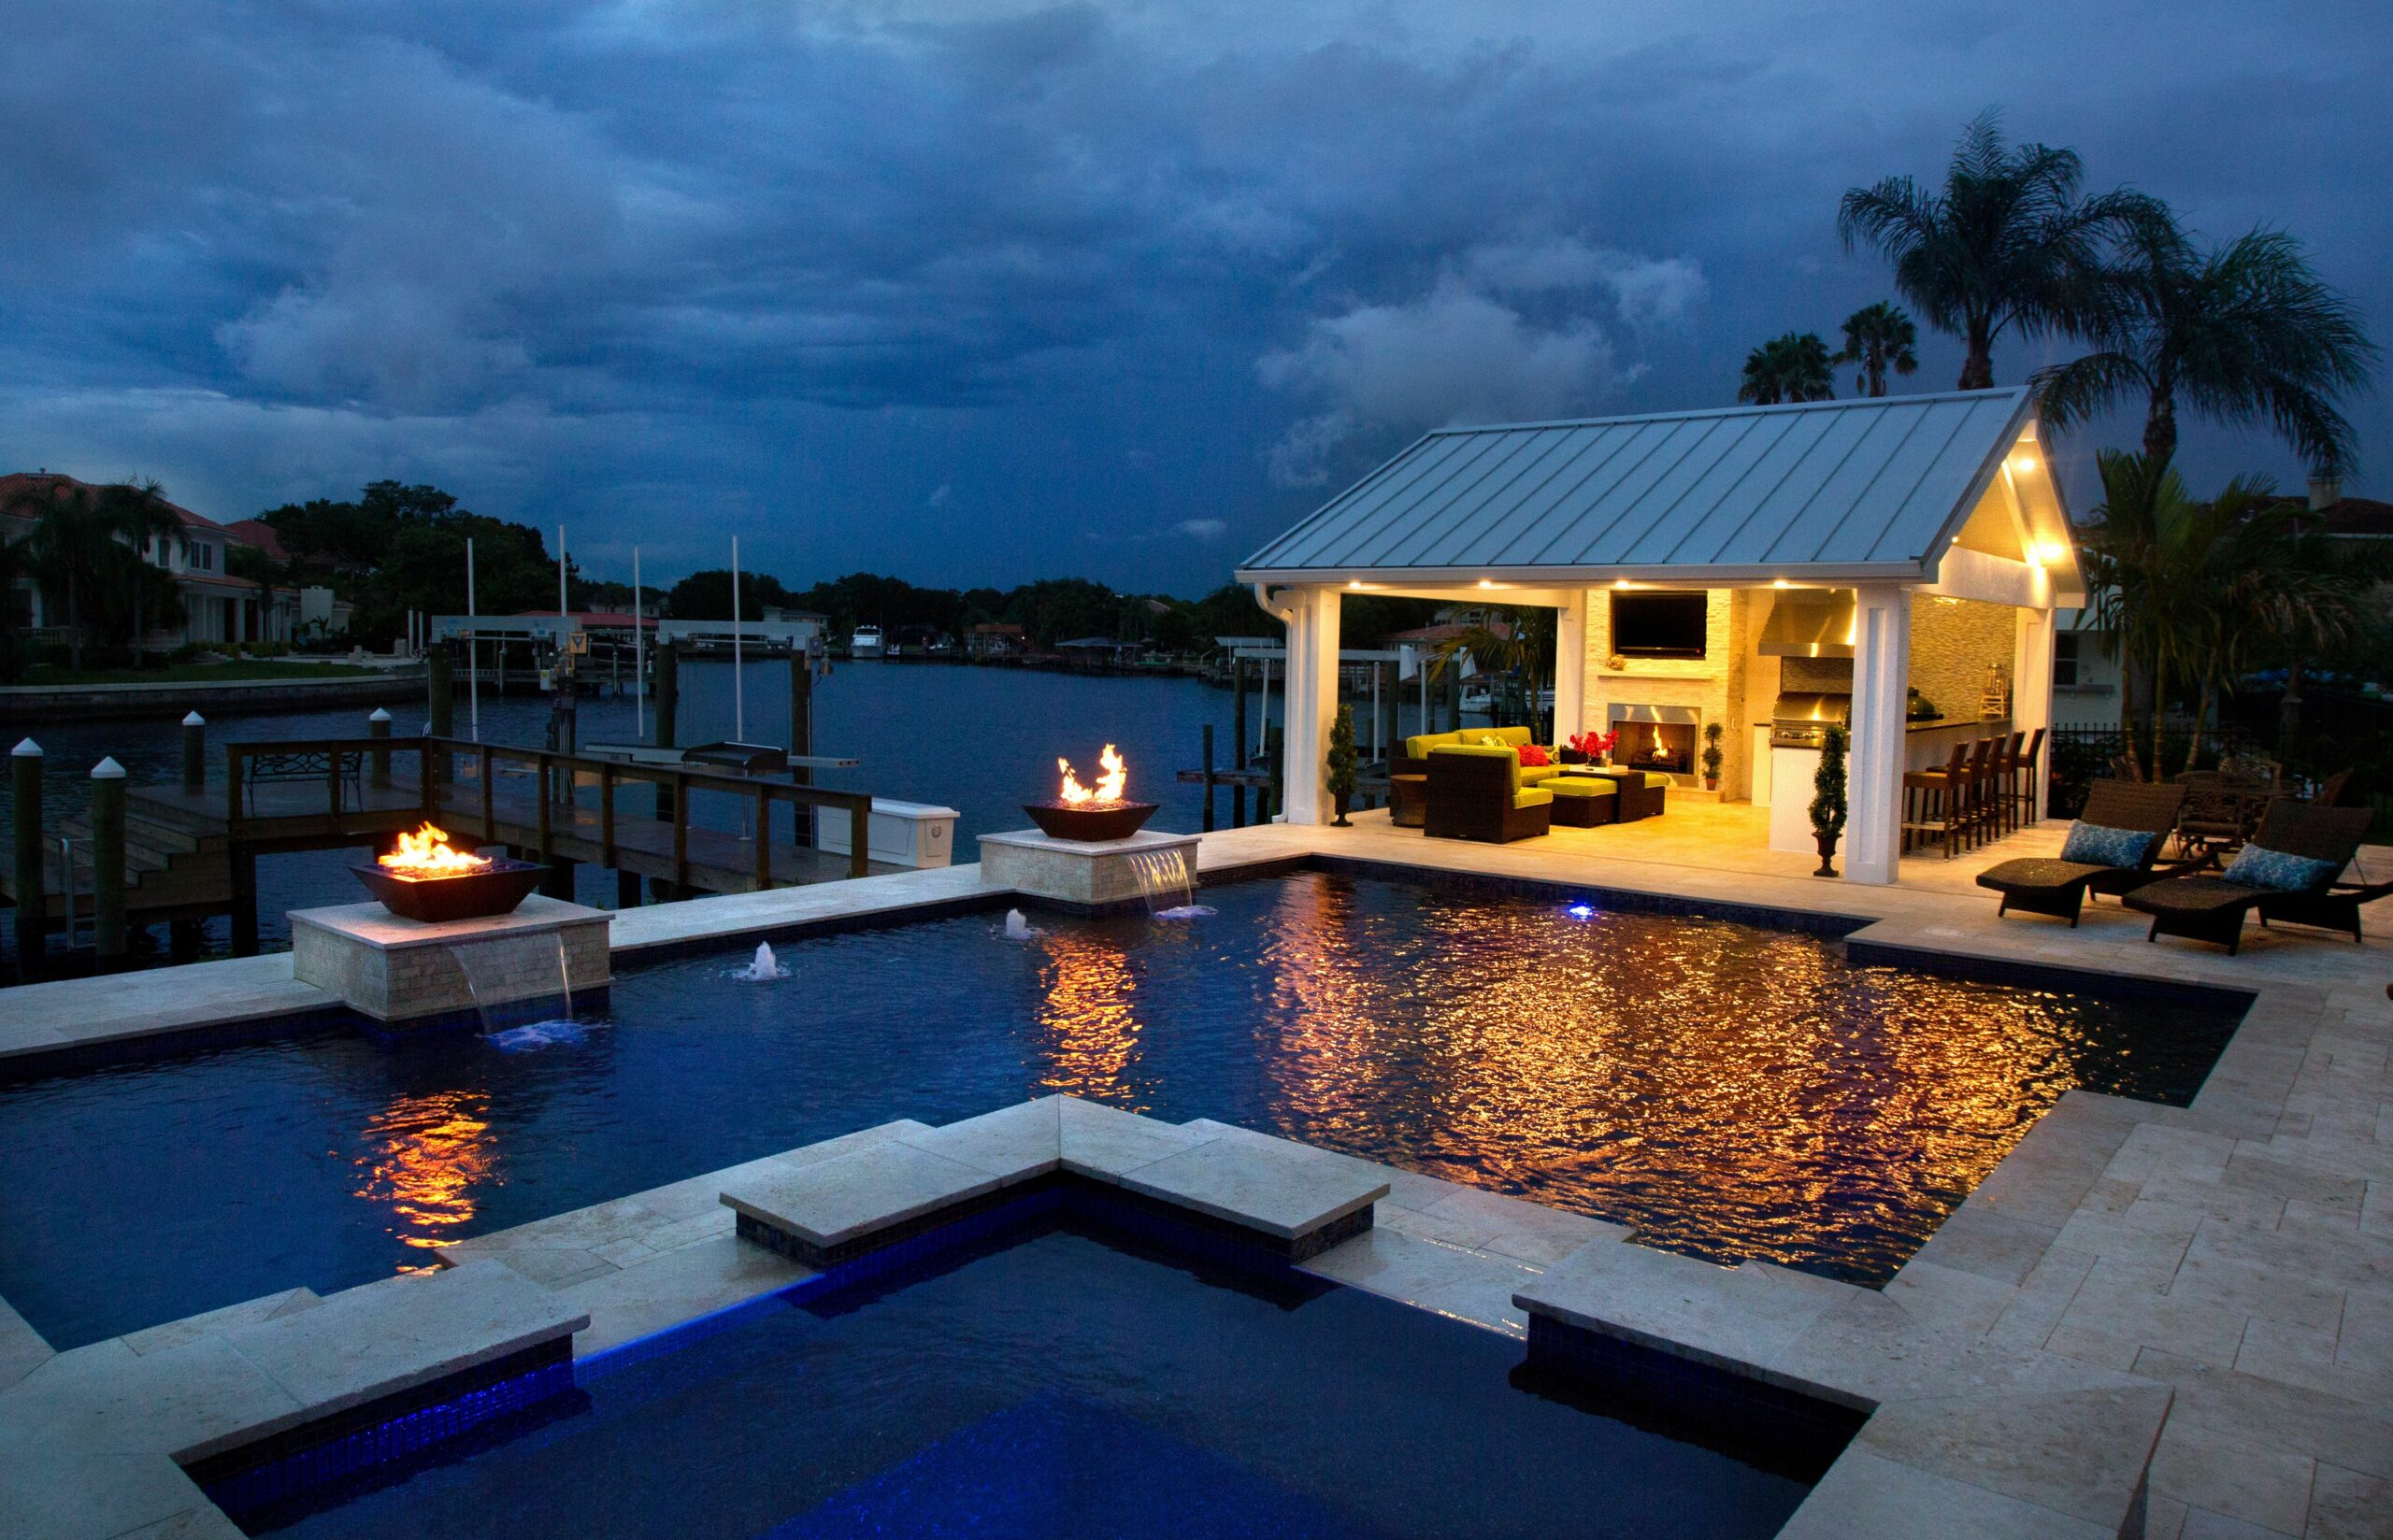 10 Tampa Swimming Pool Deck Ideas - Grand Vista Pools - pool ideas with fire pit